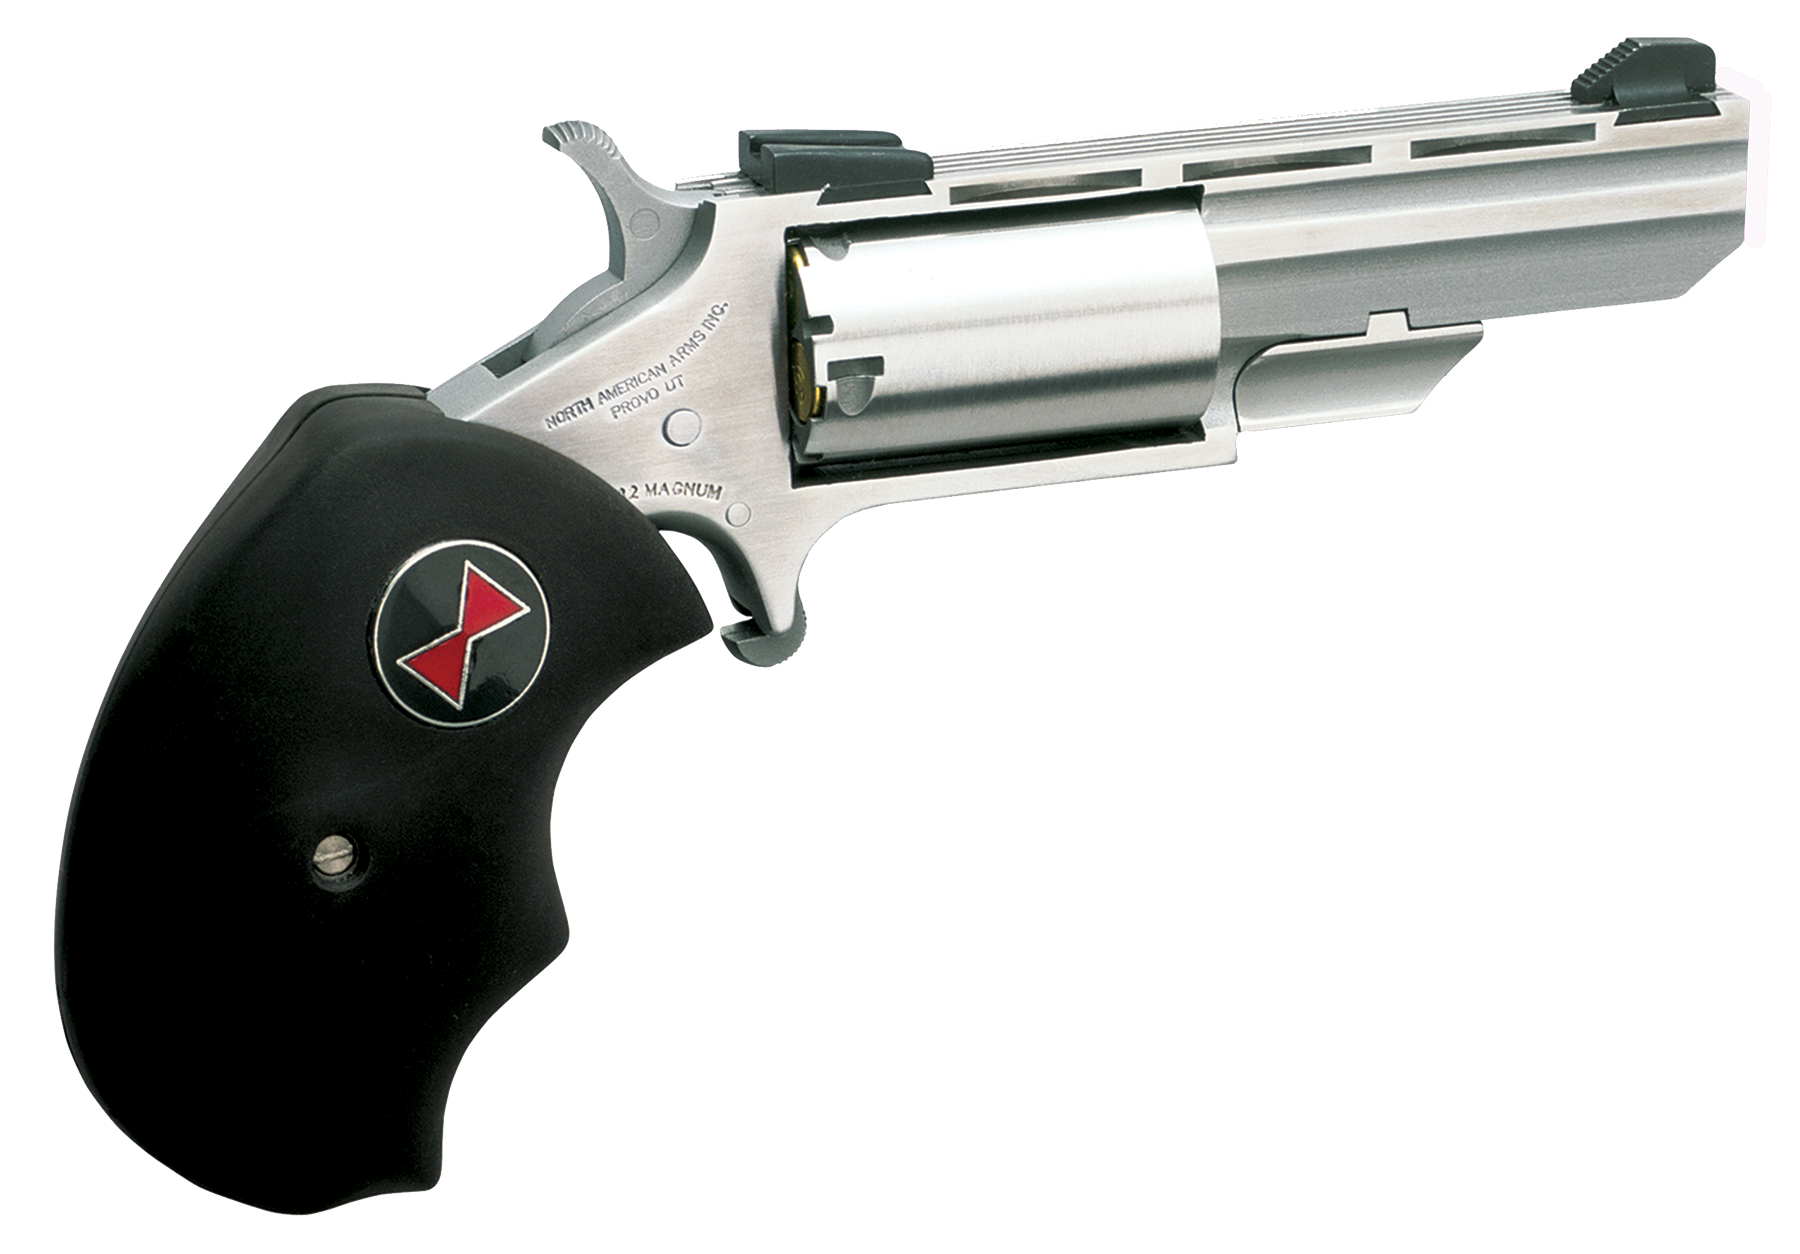 NAA Black Widow Revolver - .22 LR/.22 Magnum 5rd - Black/Stainless